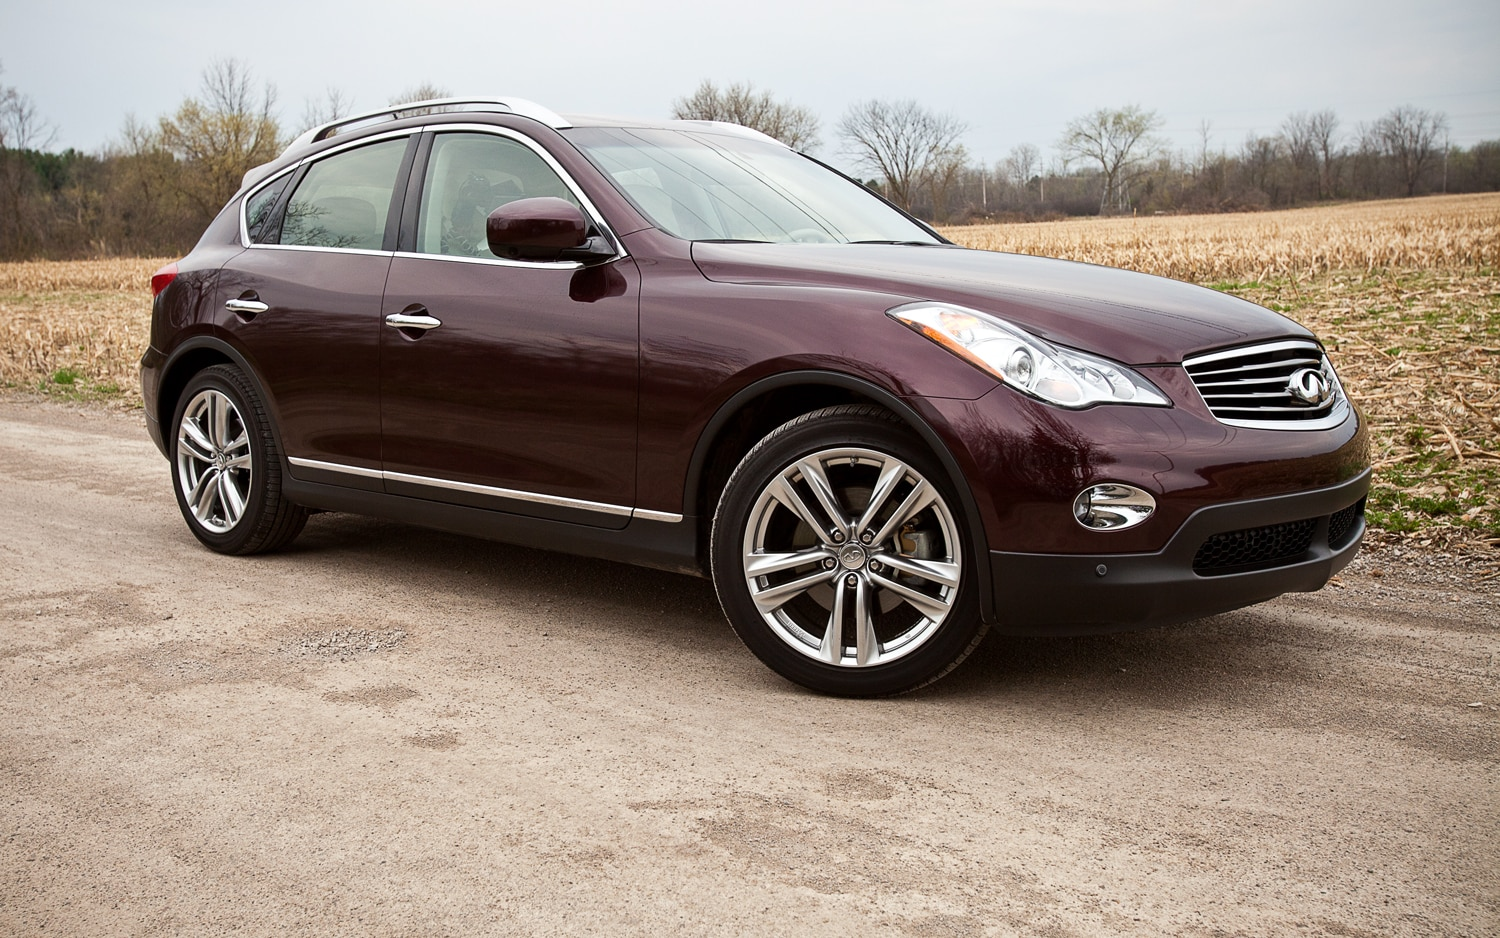 2012 Infiniti EX35 Journey AWD Front Right Side View1